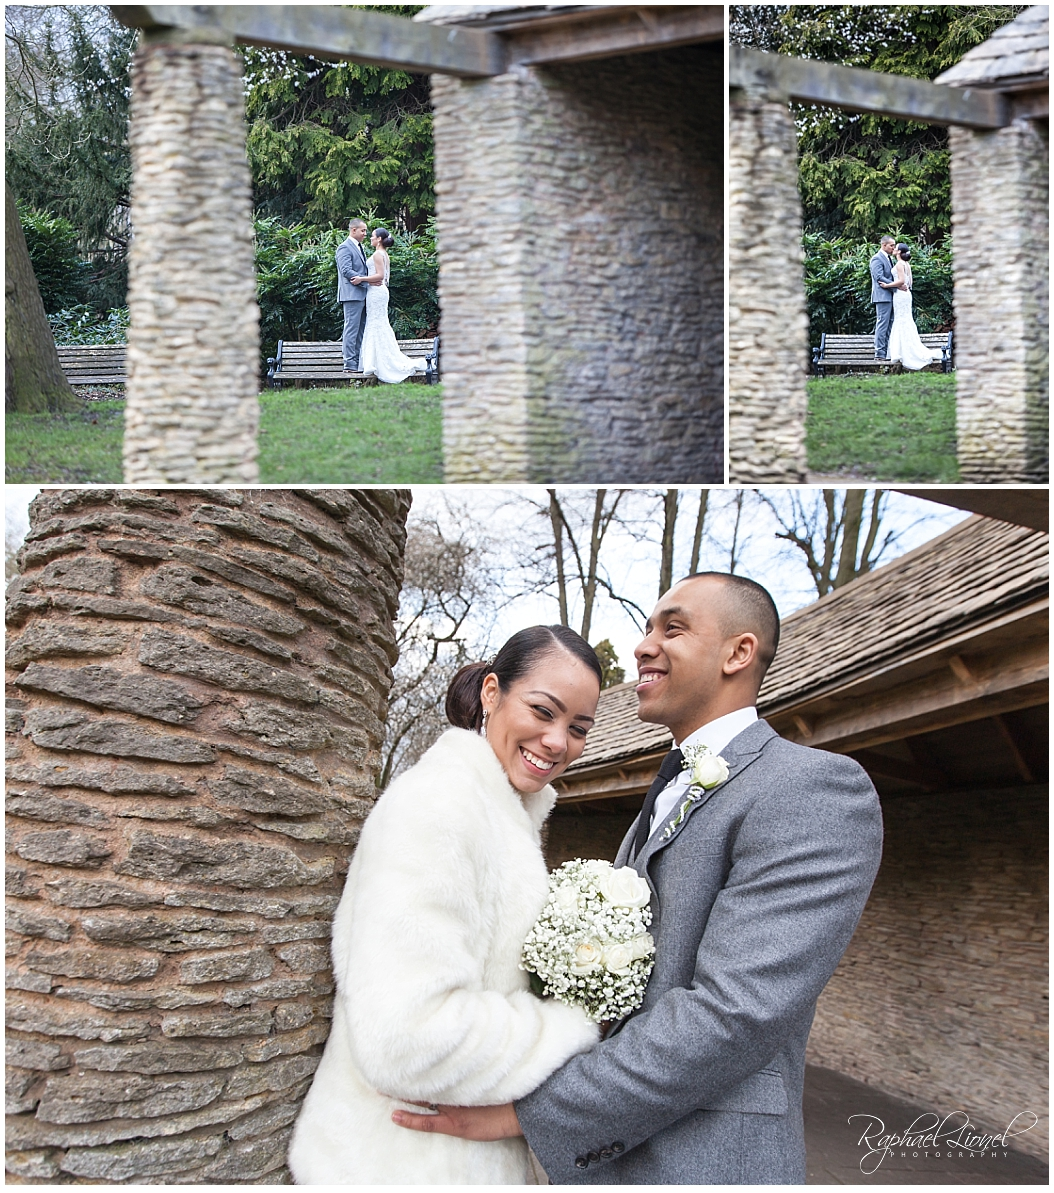 ShanNathnael24 - Nathanael and Shanice's Winter Wedding